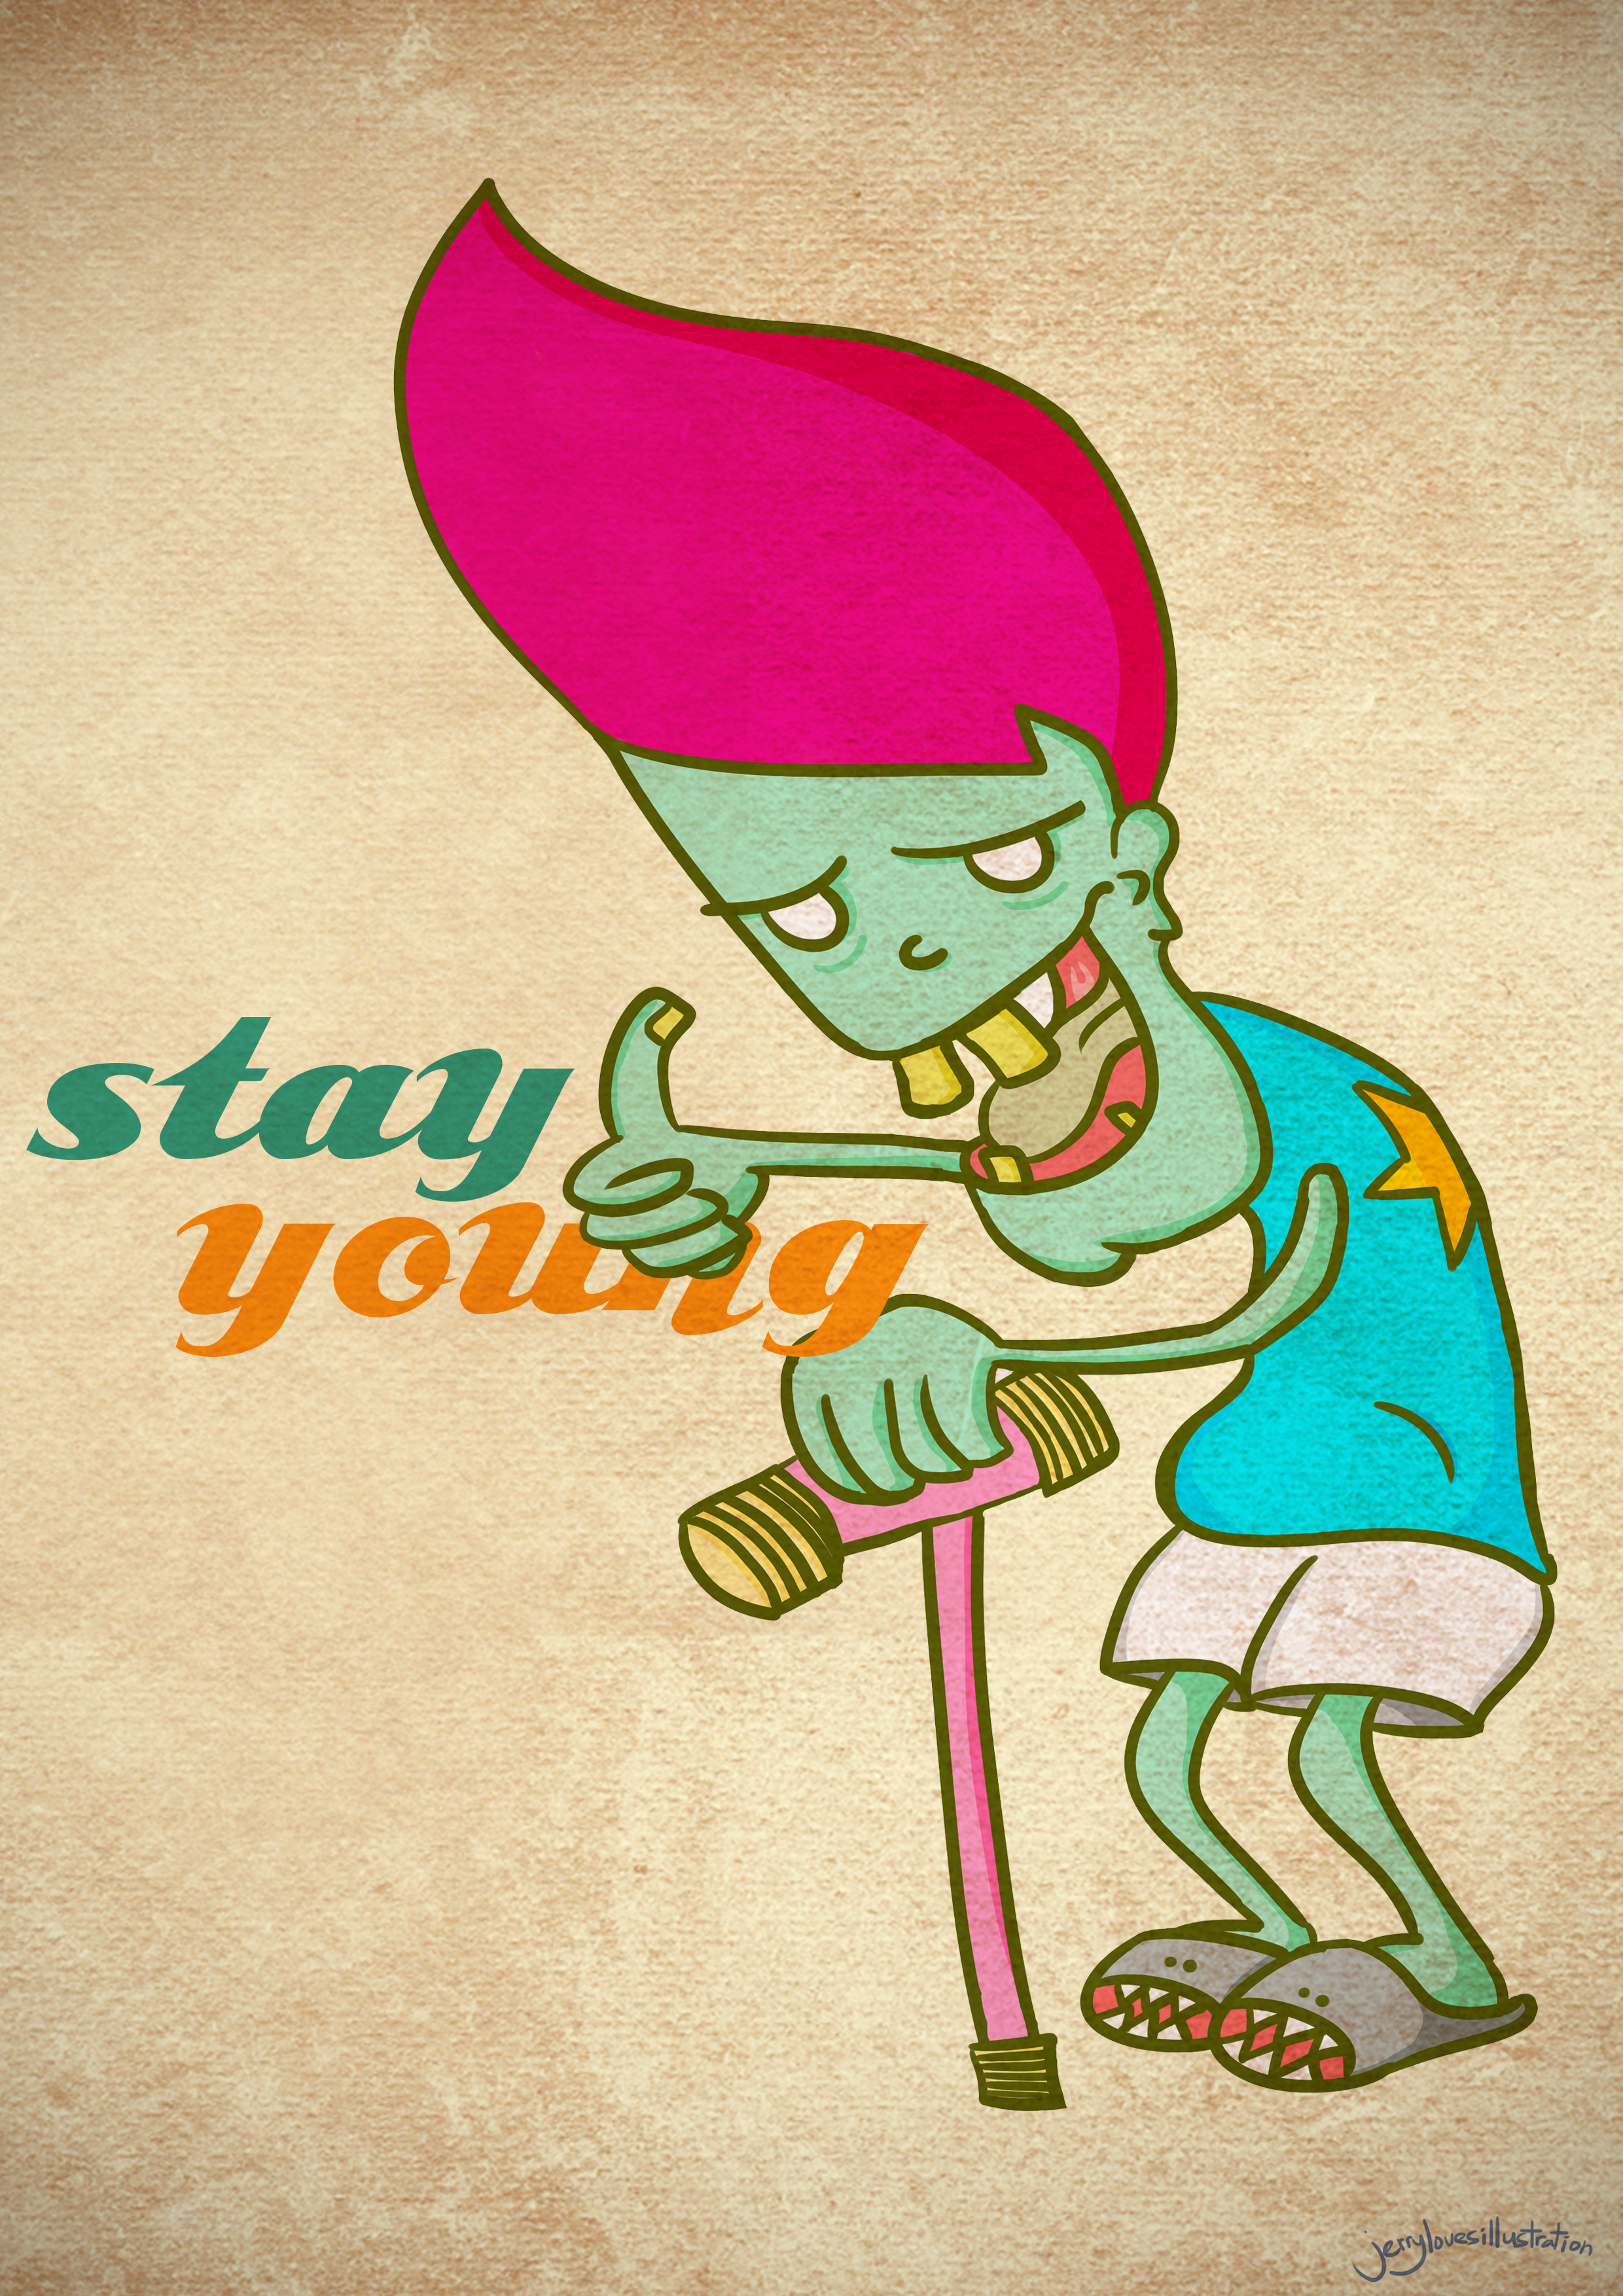 Stay Young!